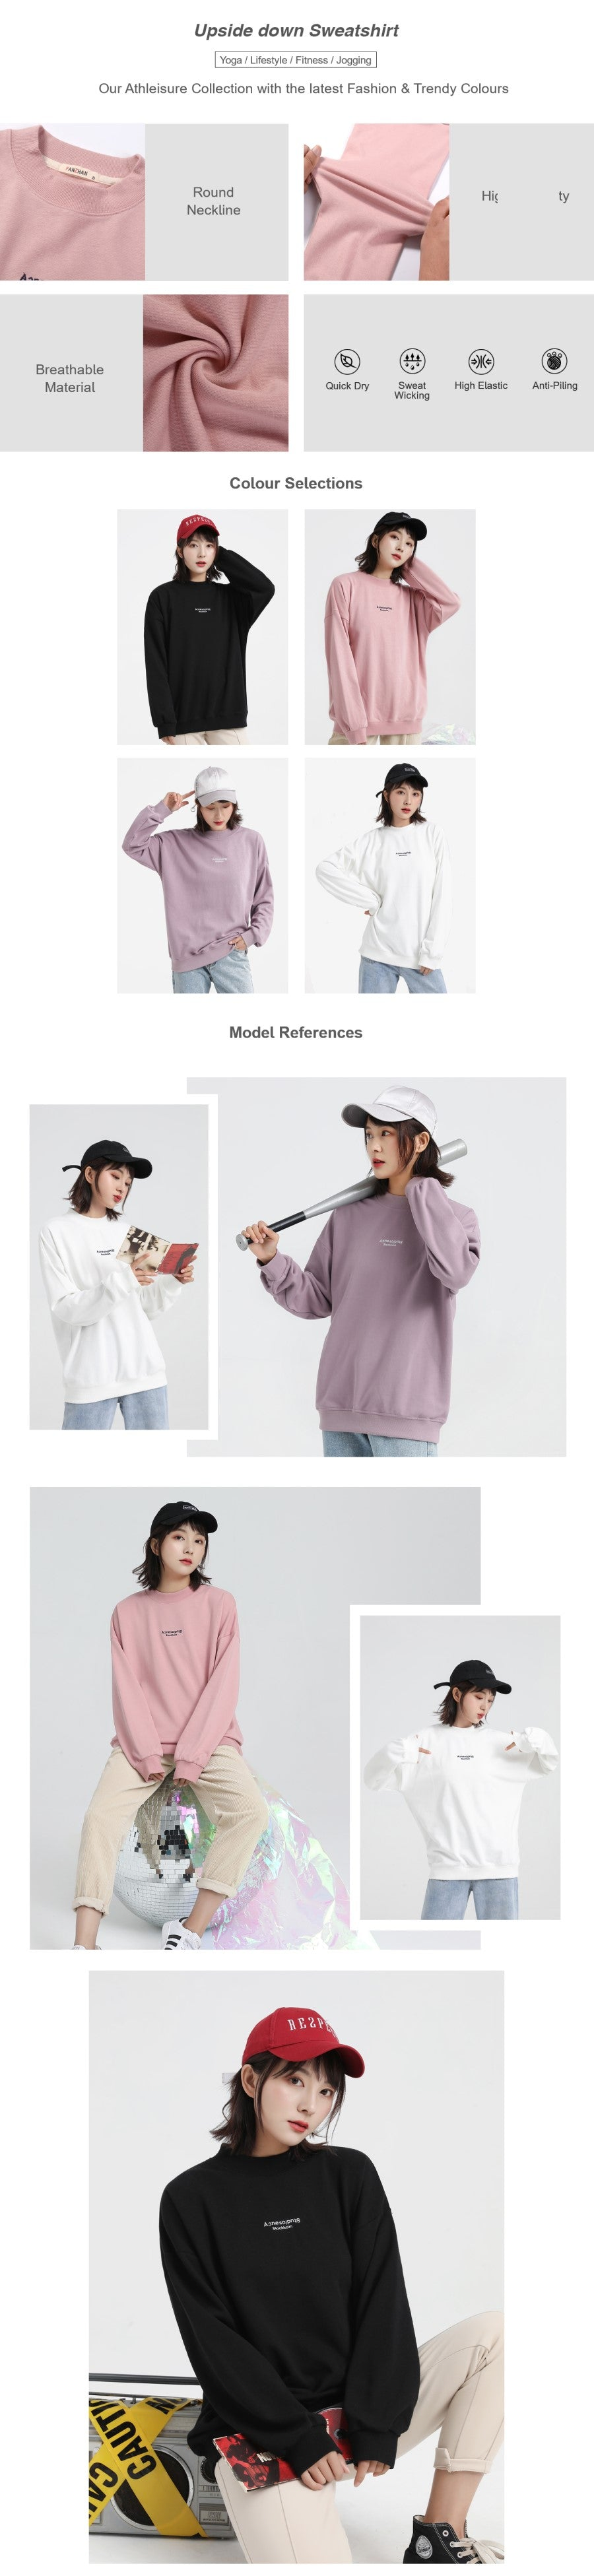 Embroidered Oversize Sweatshirt